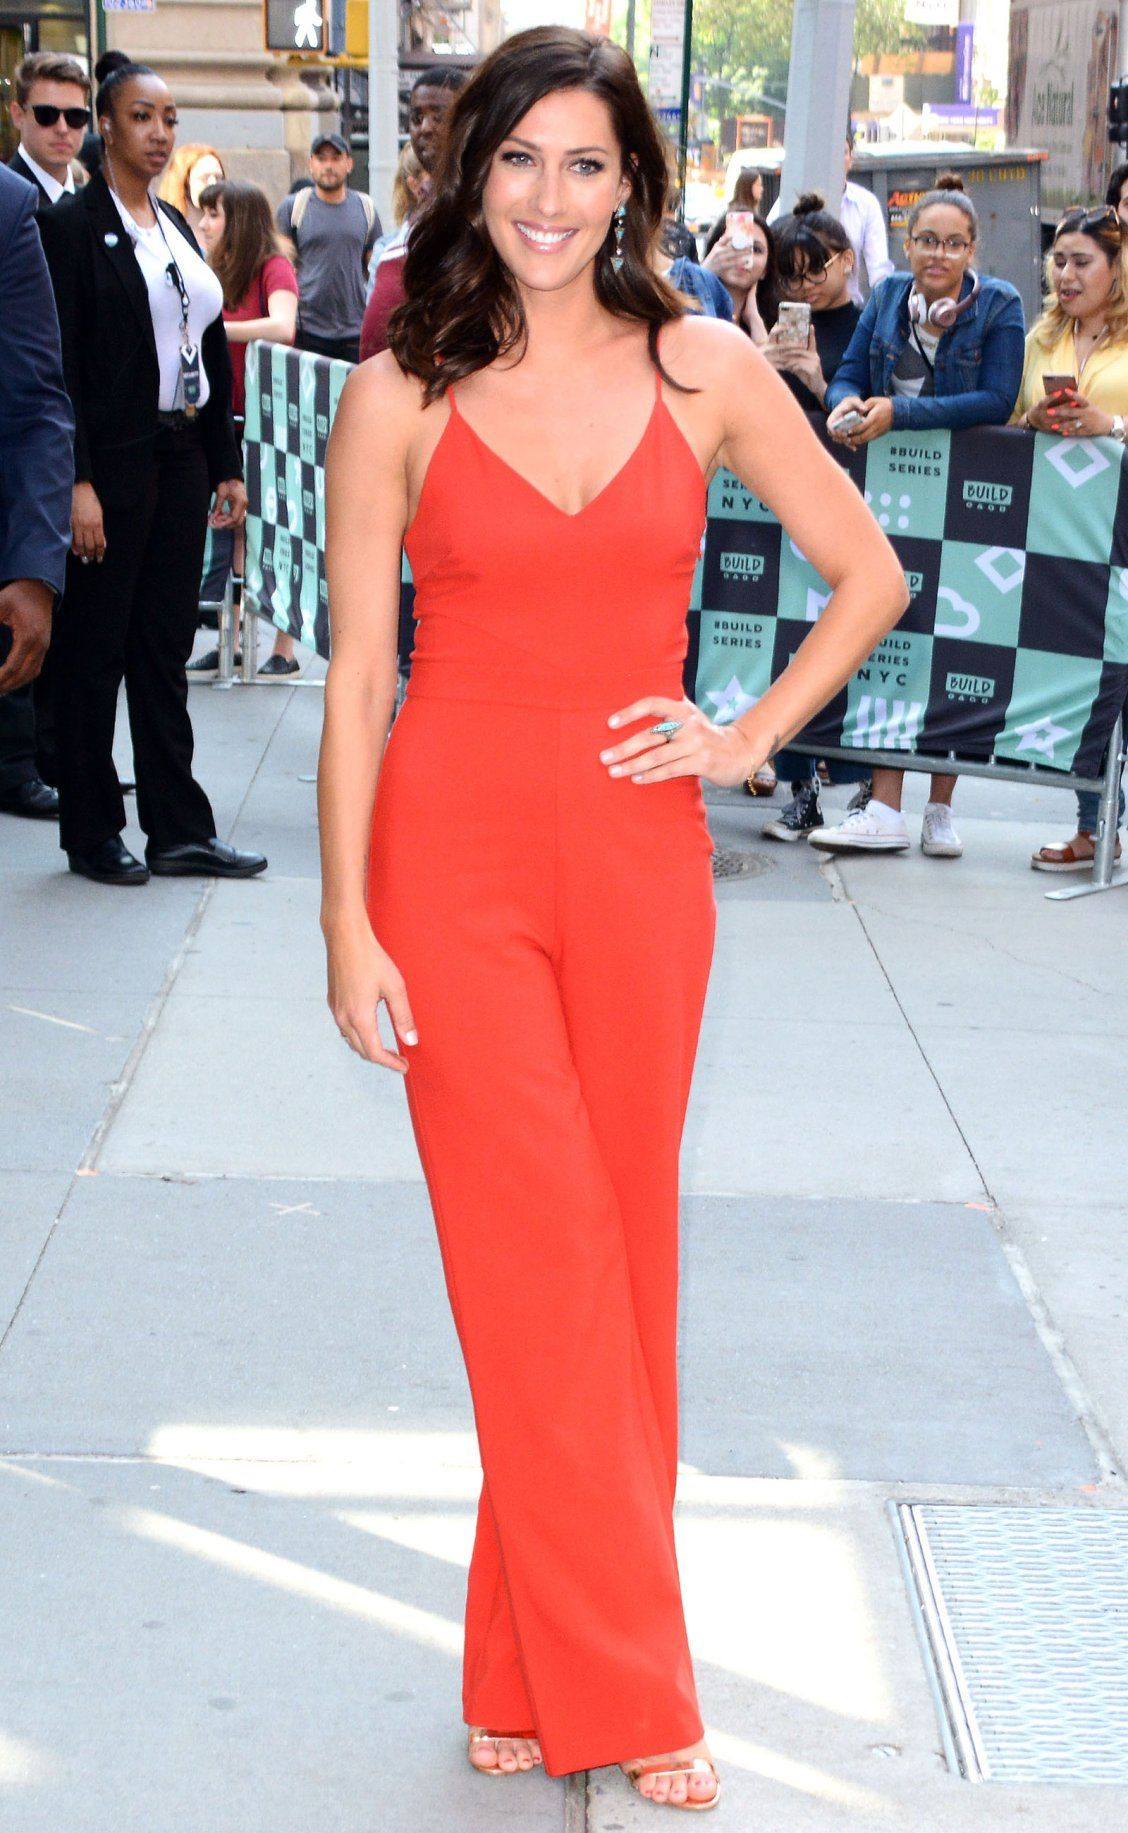 b07a04175fc4 Red jumpsuit - click through for more date outfit ideas from The Bachelorette  Becca Kufrin!